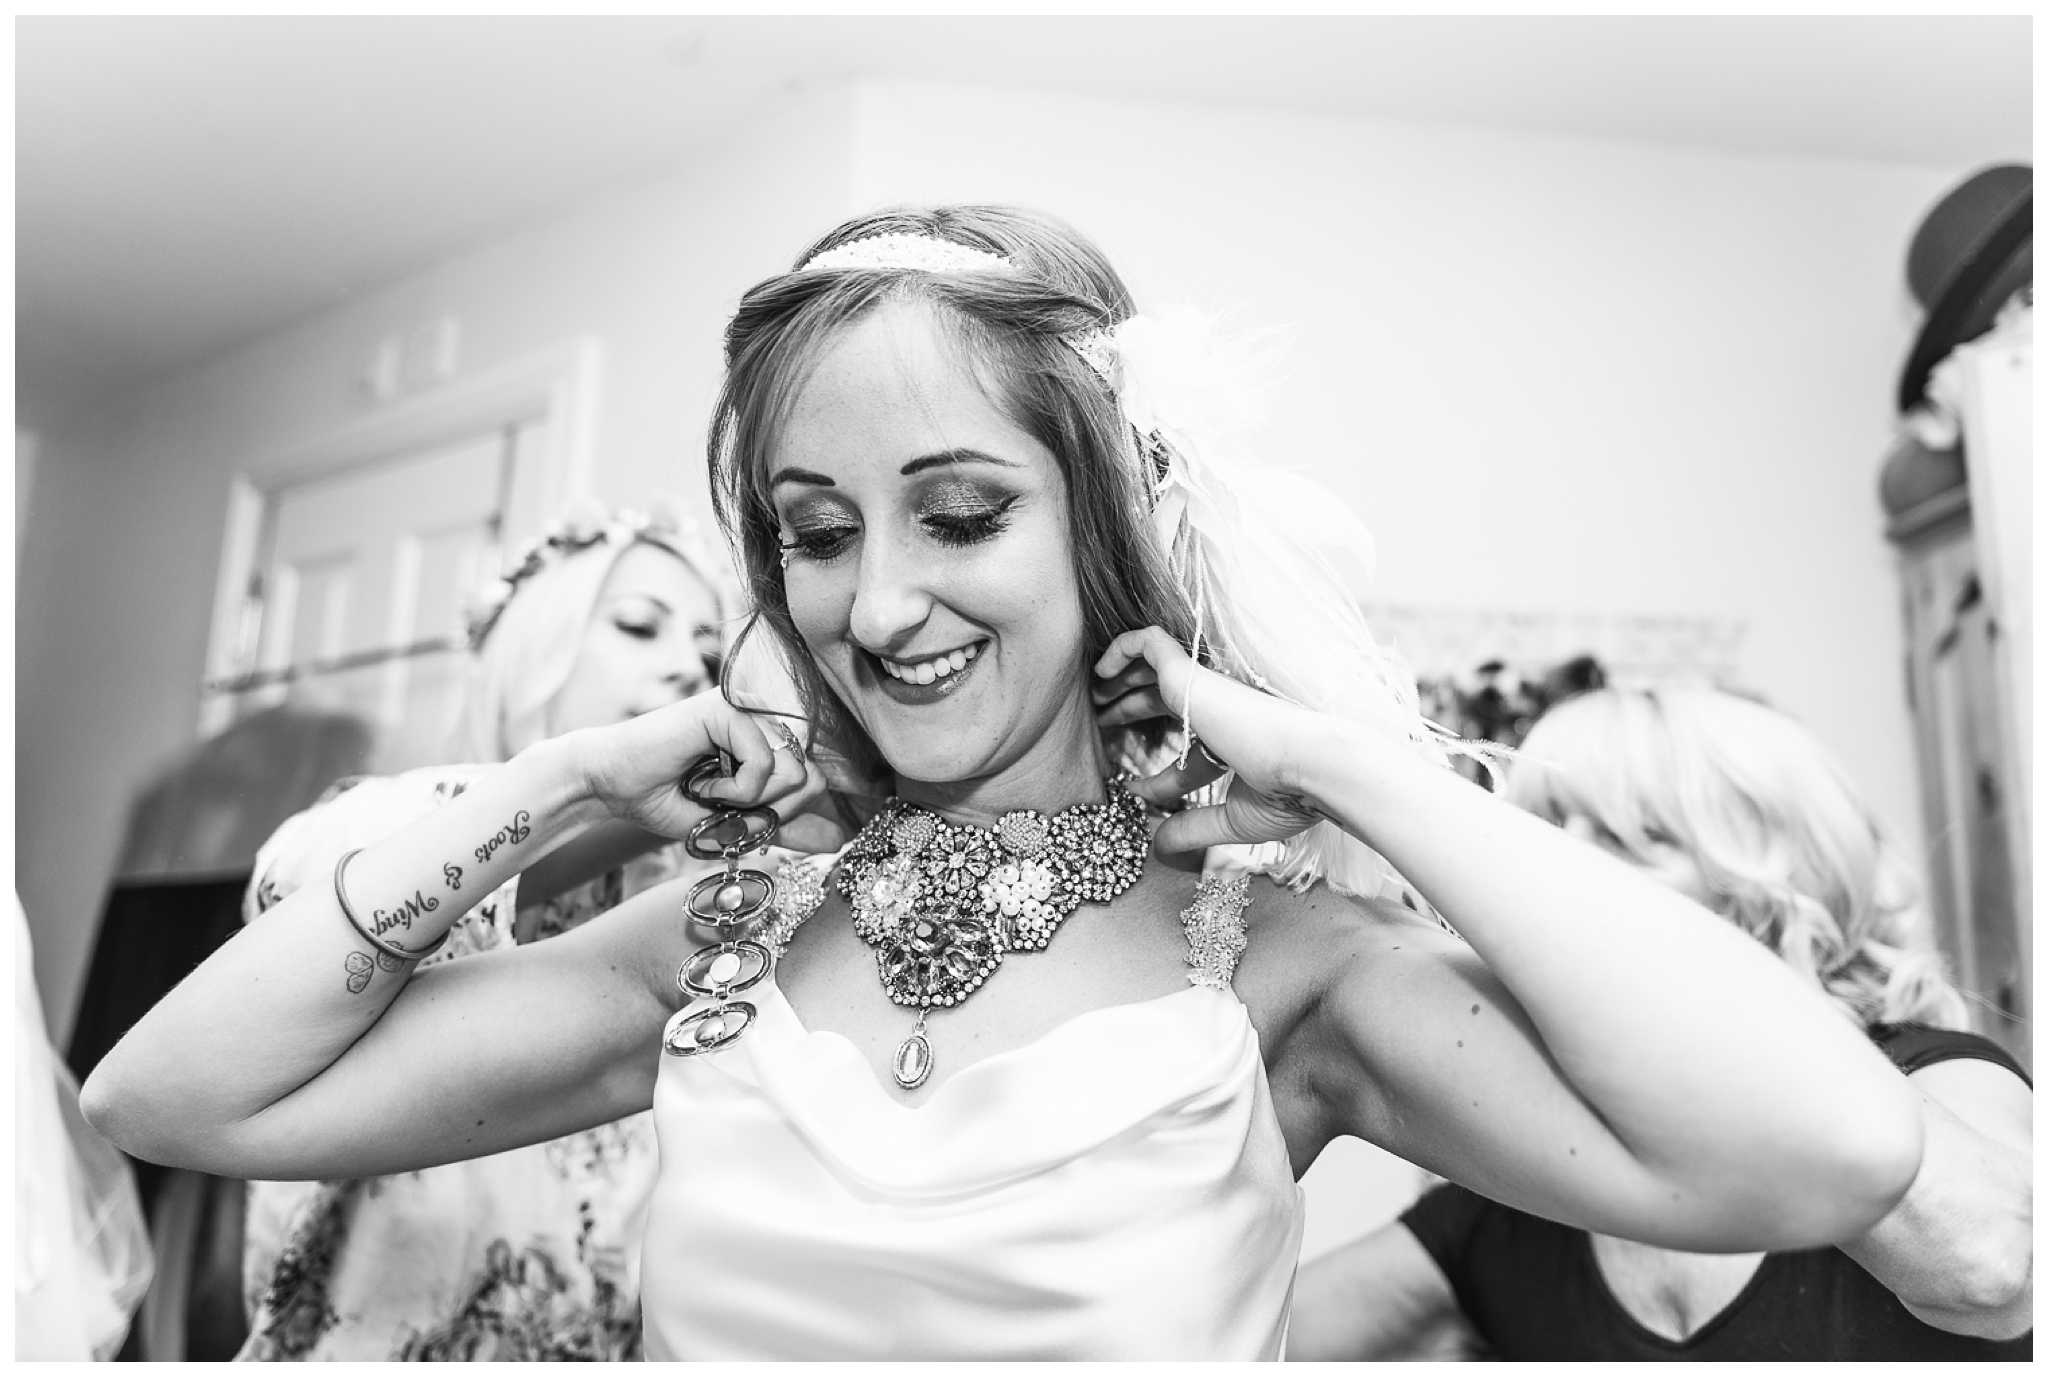 Nikki_Cooper_Photography_vintage_handmade_wedding_0023.jpg